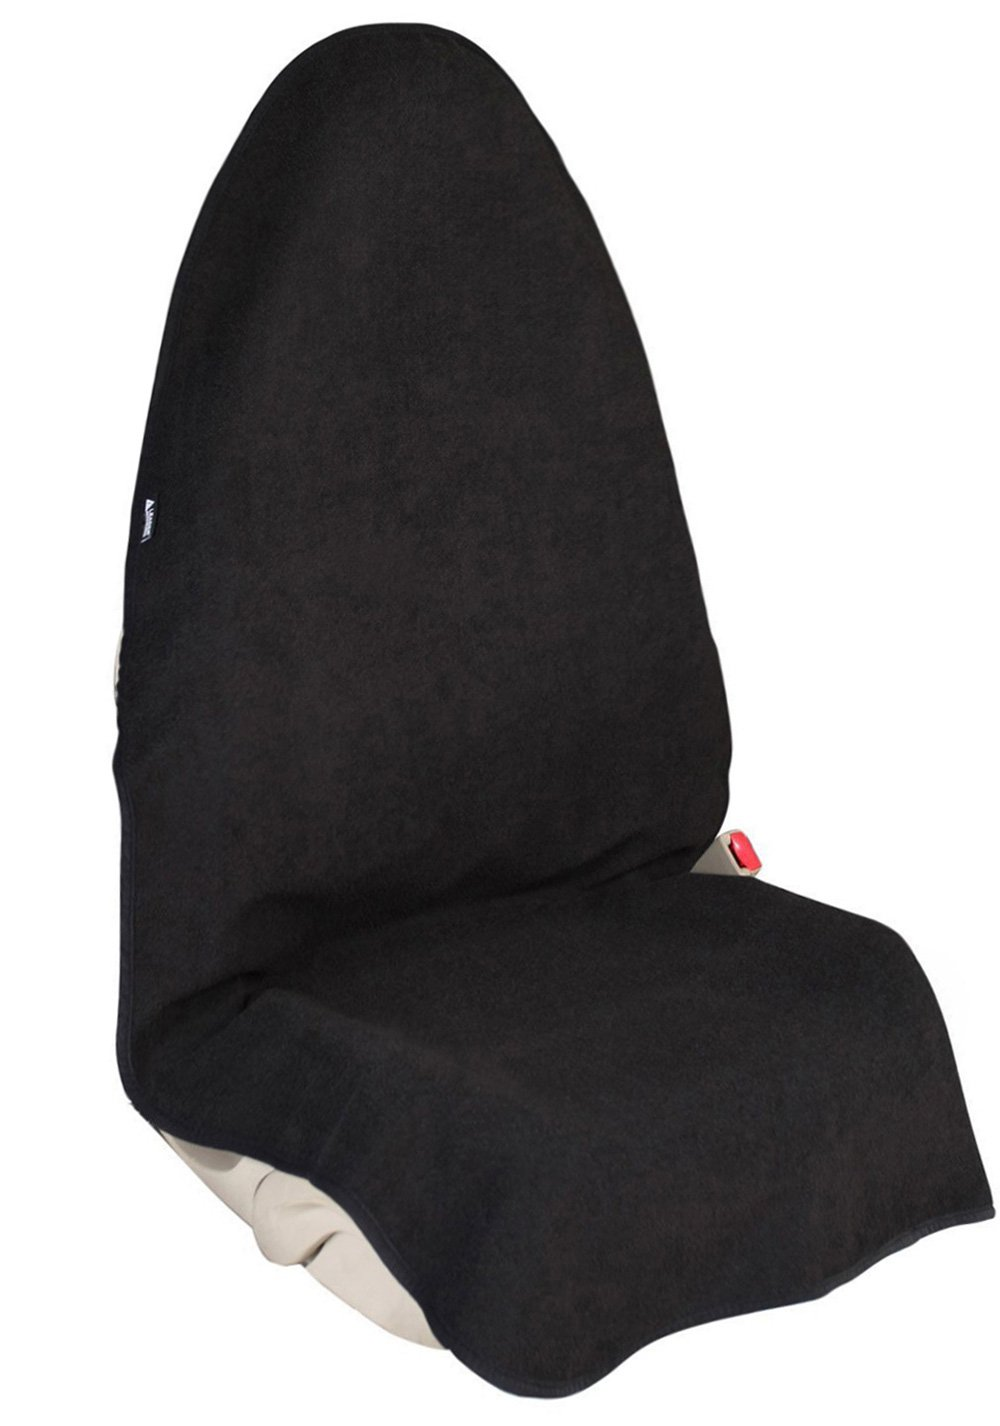 Leader Accessories Waterproof Sweat Towel Front Bucket Seat Cover